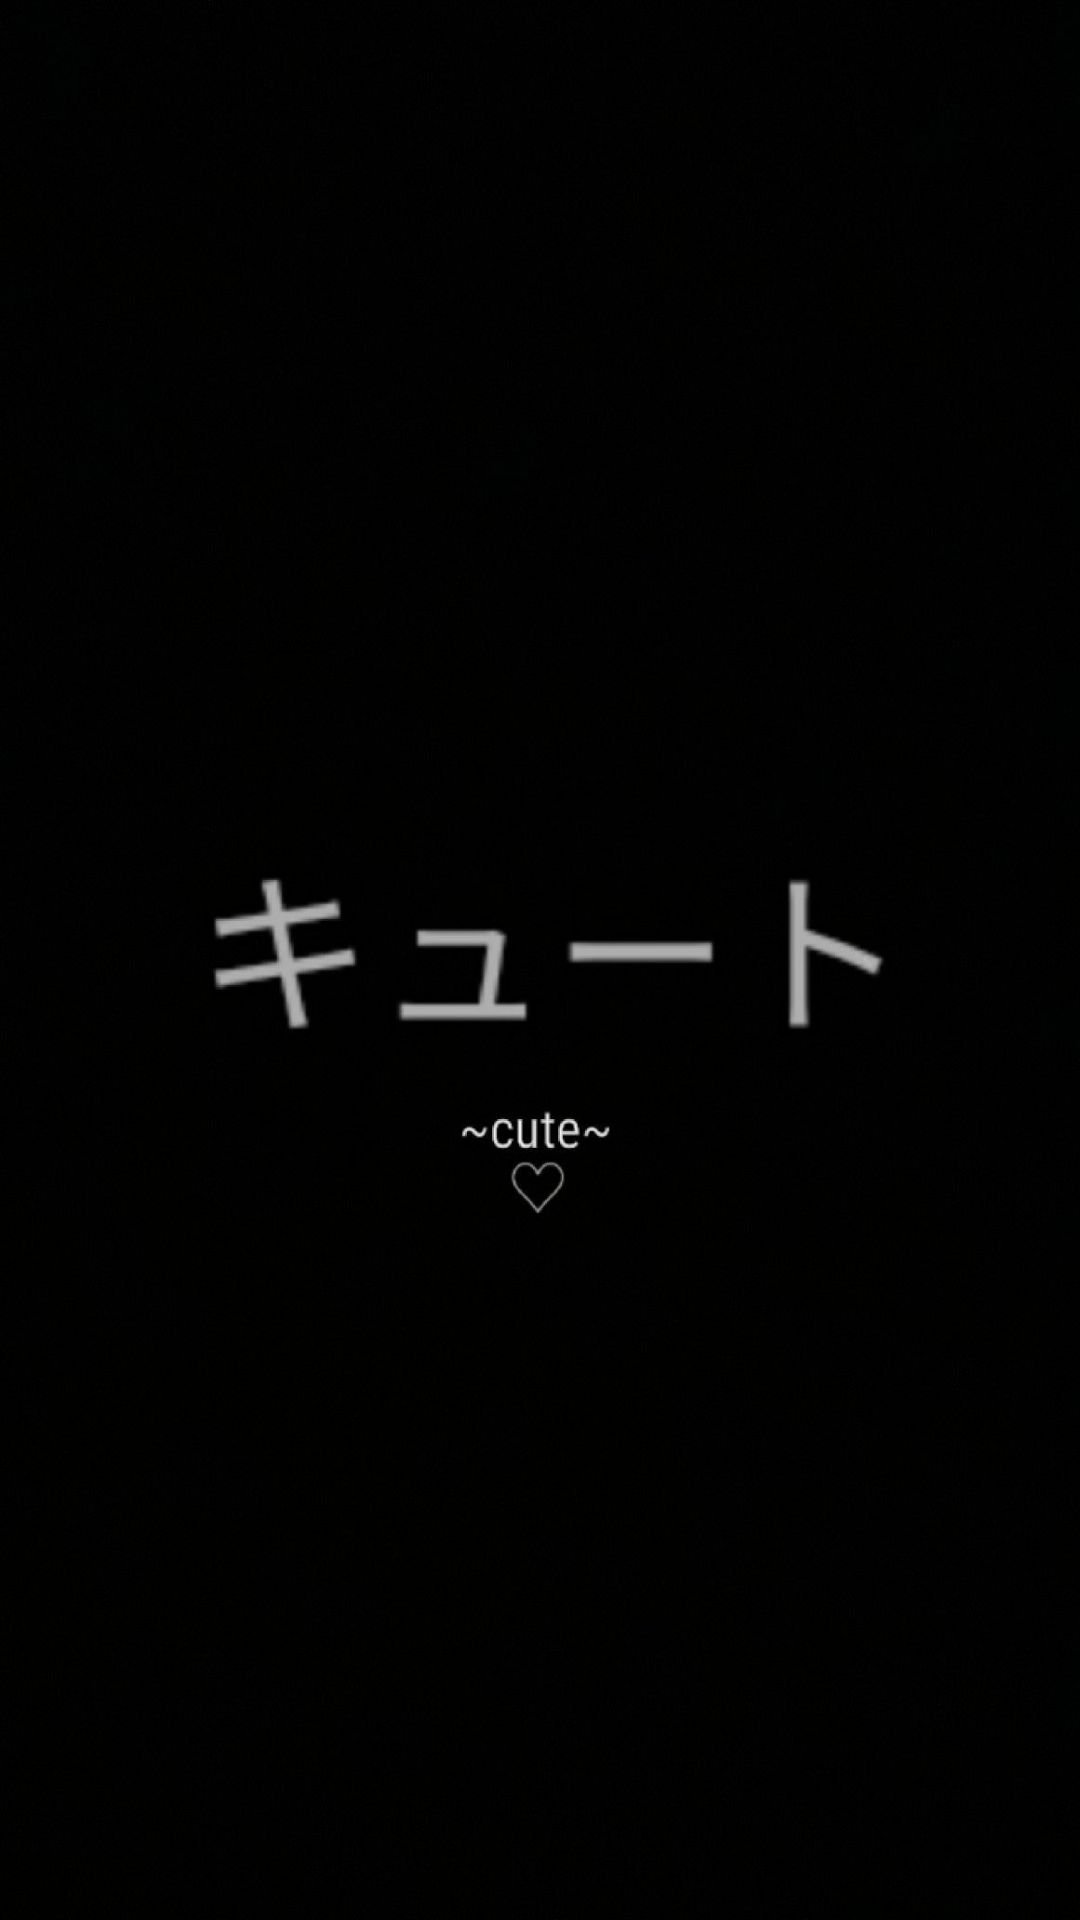 Free Download 15 Japanese Aesthetic Quotes Android Iphone Desktop Hd 1080x1920 For Your Desktop Mobile Tablet Explore 42 Japanese Aesthetic Wallpapers Japanese Aesthetic Wallpapers Aesthetic Wallpaper Japanese Wallpaper